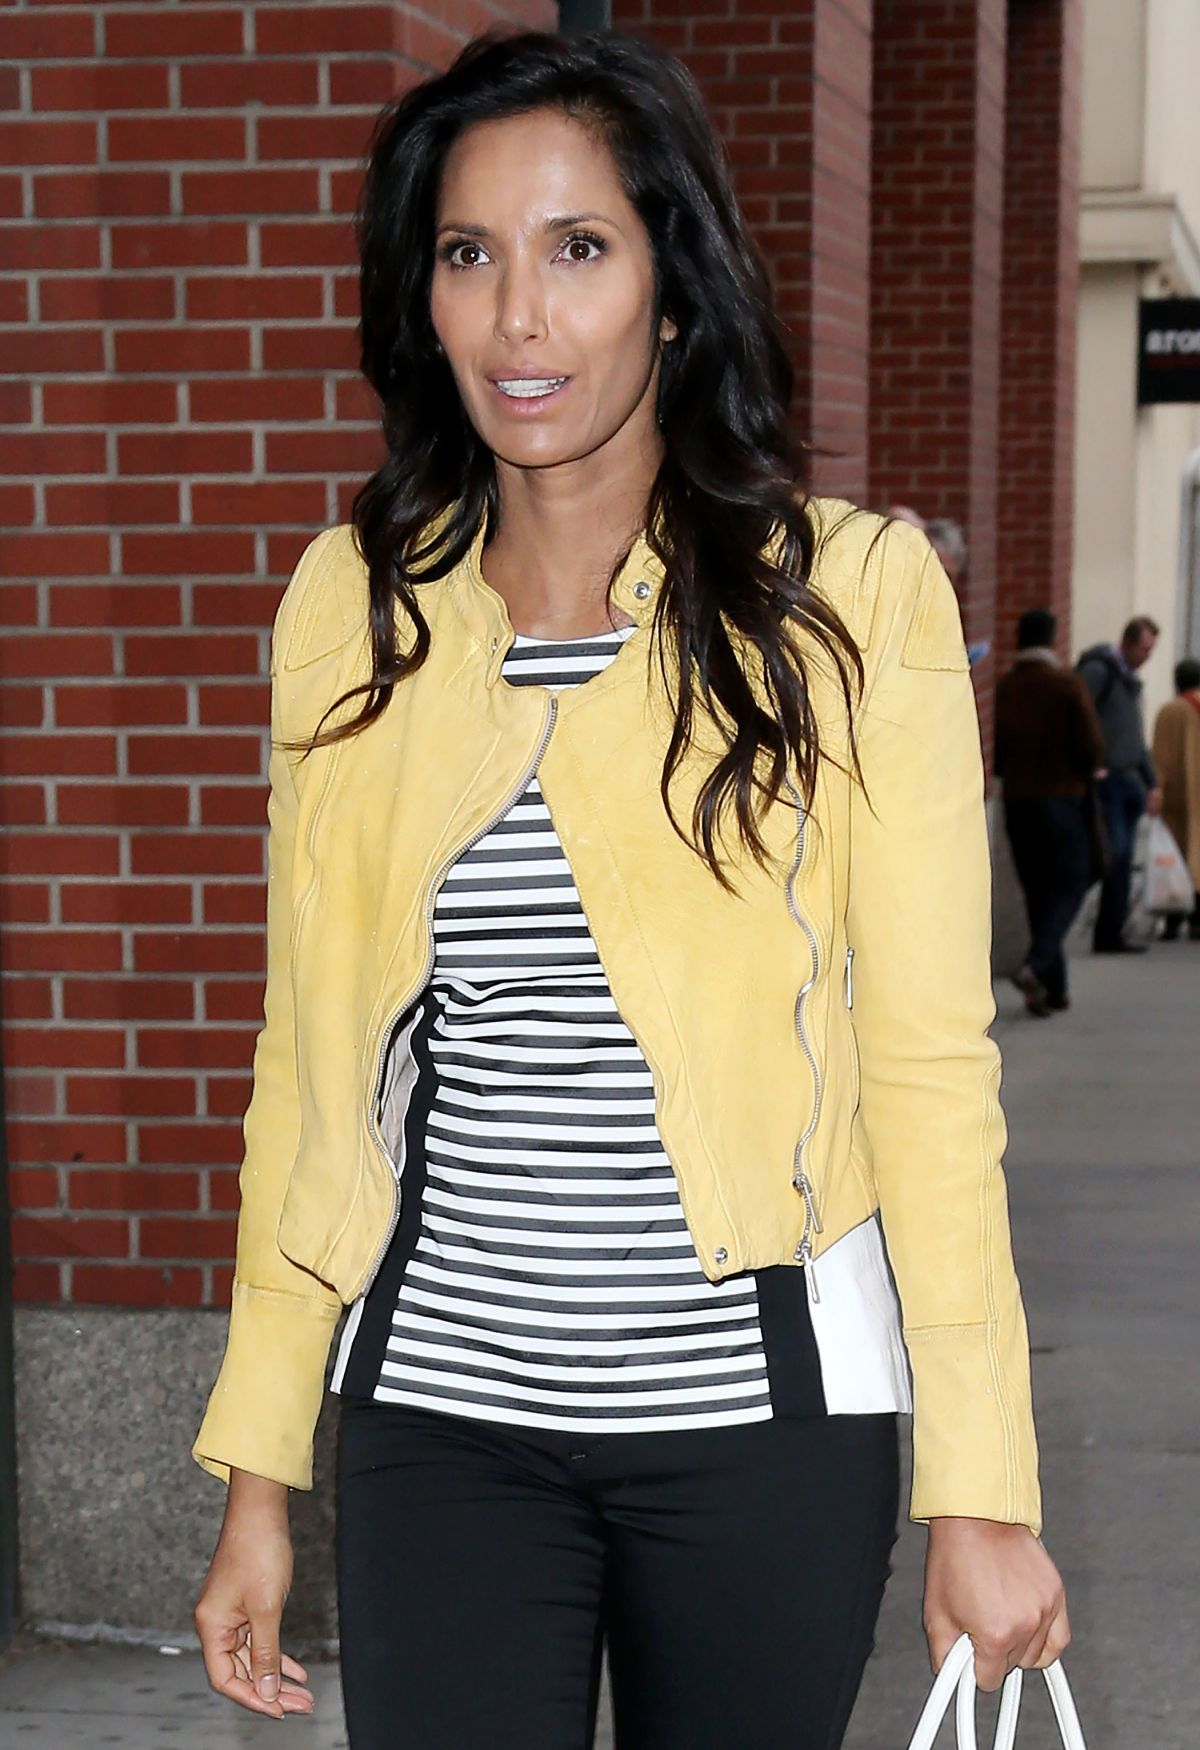 Padma Lakshmi Arrives At Her Apartment In New York 04 23 2015